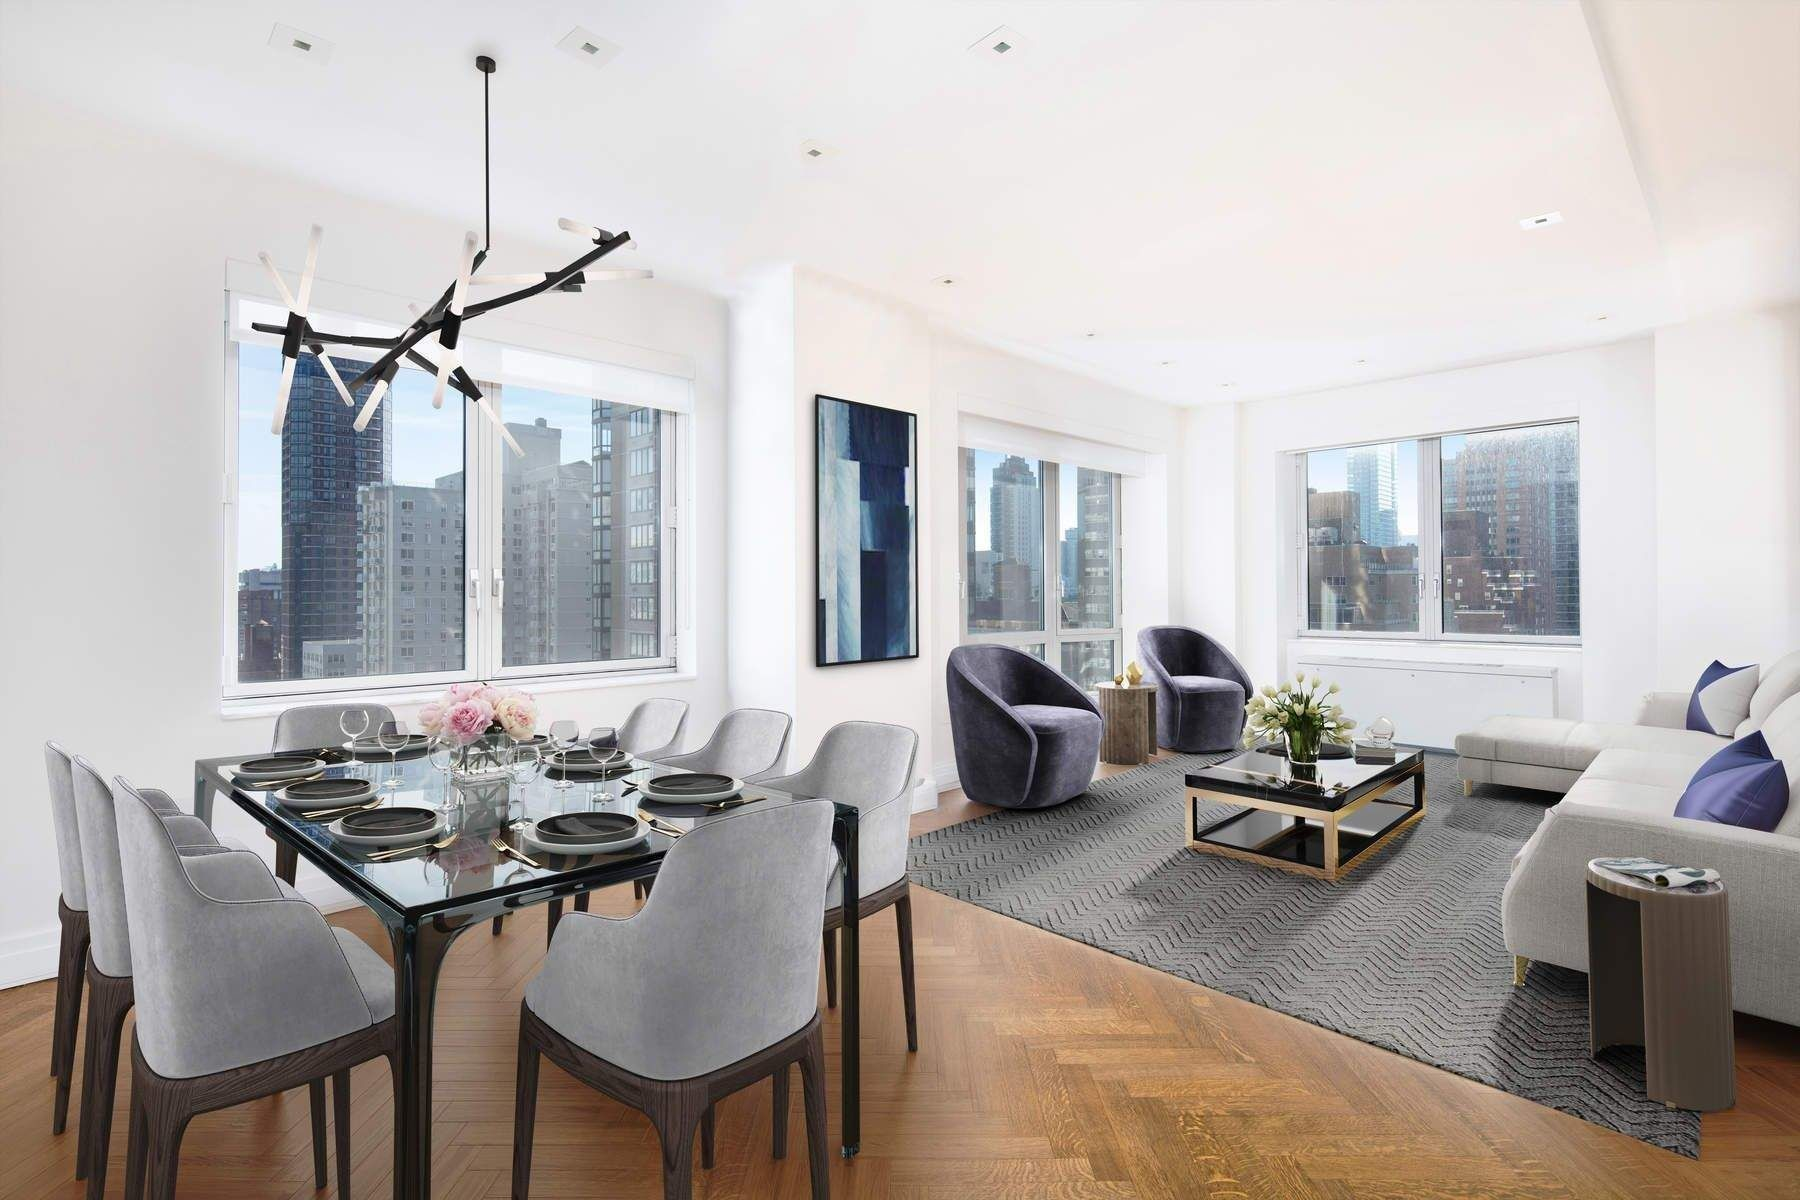 Upscale 2-Bedroom House In Upper East Side